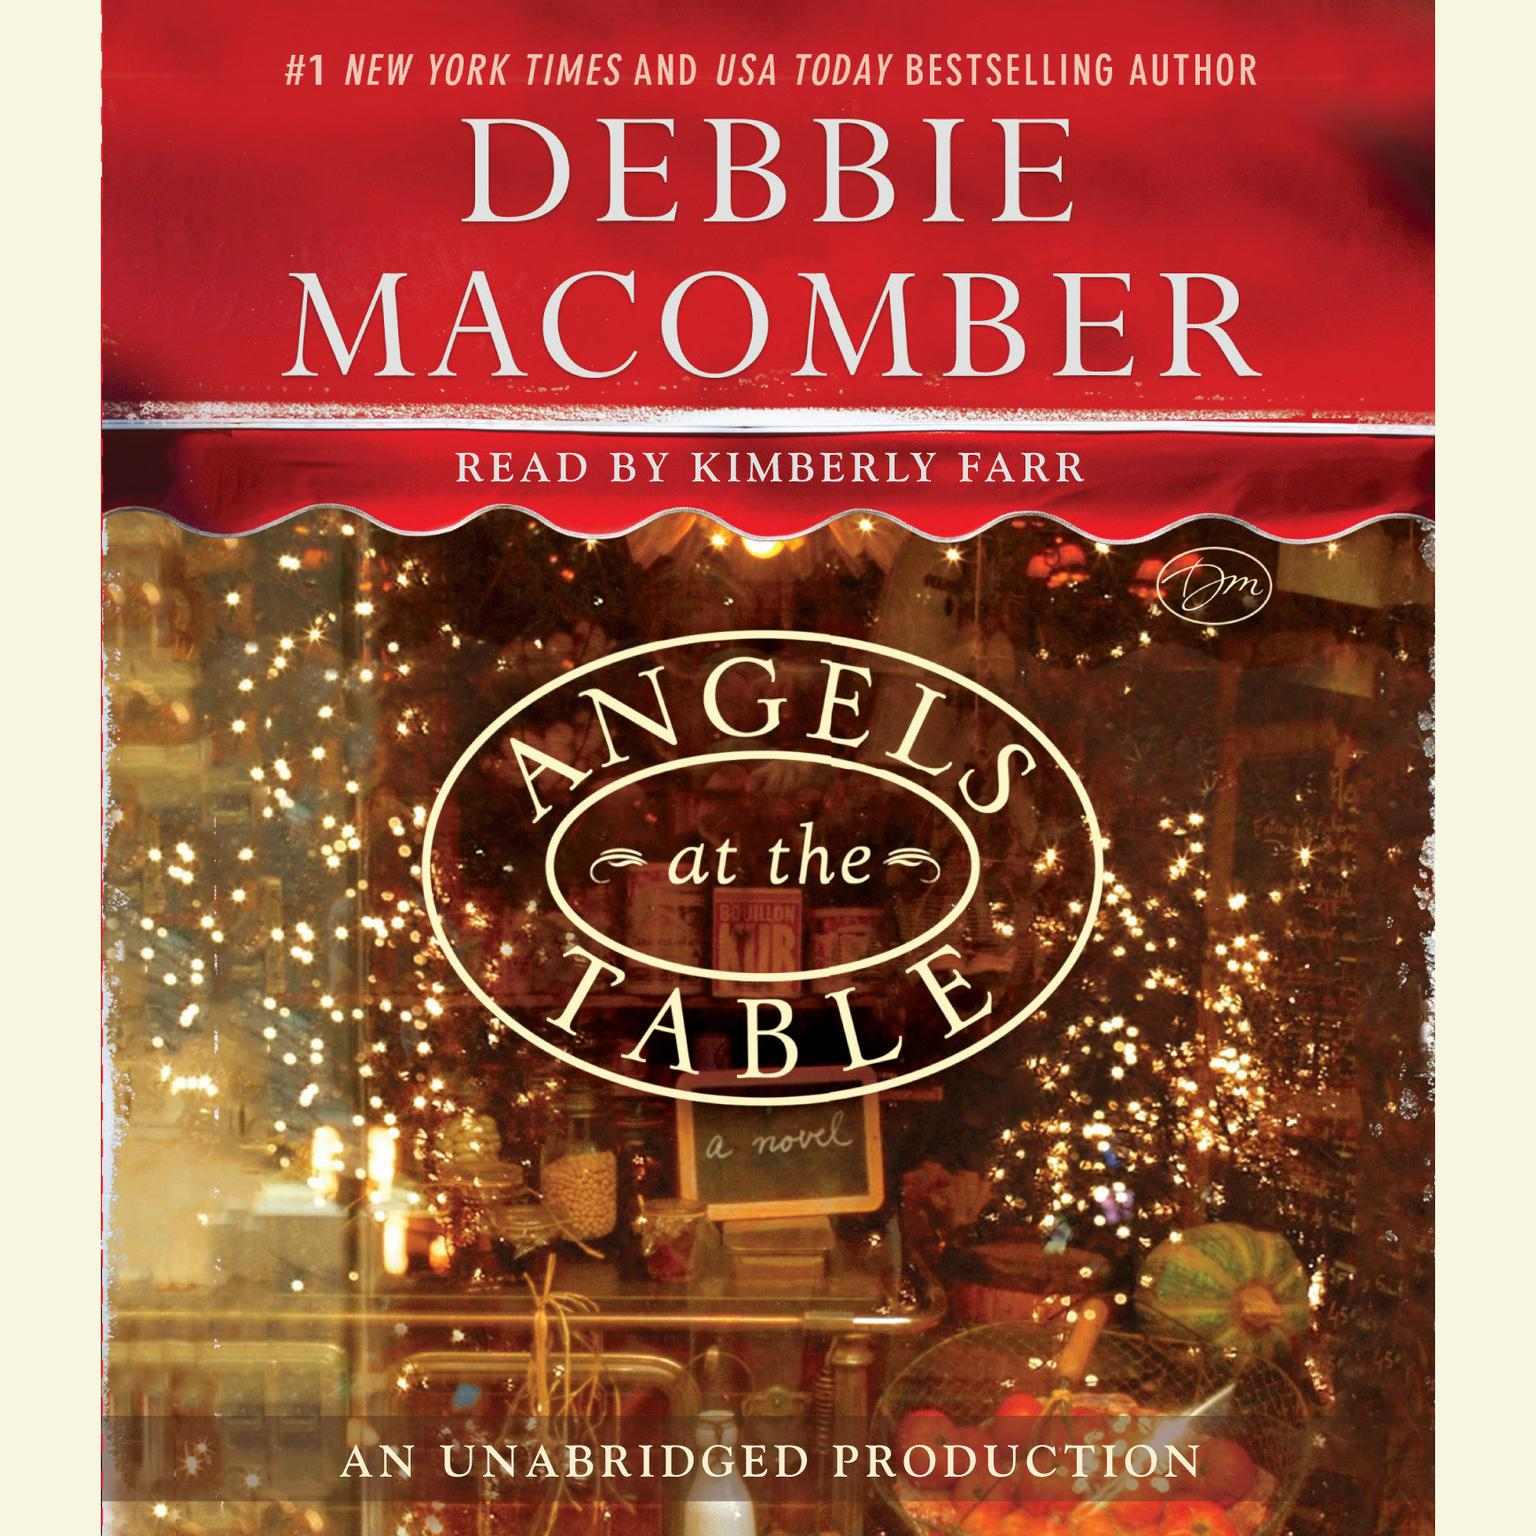 Printable Angels at the Table Audiobook Cover Art